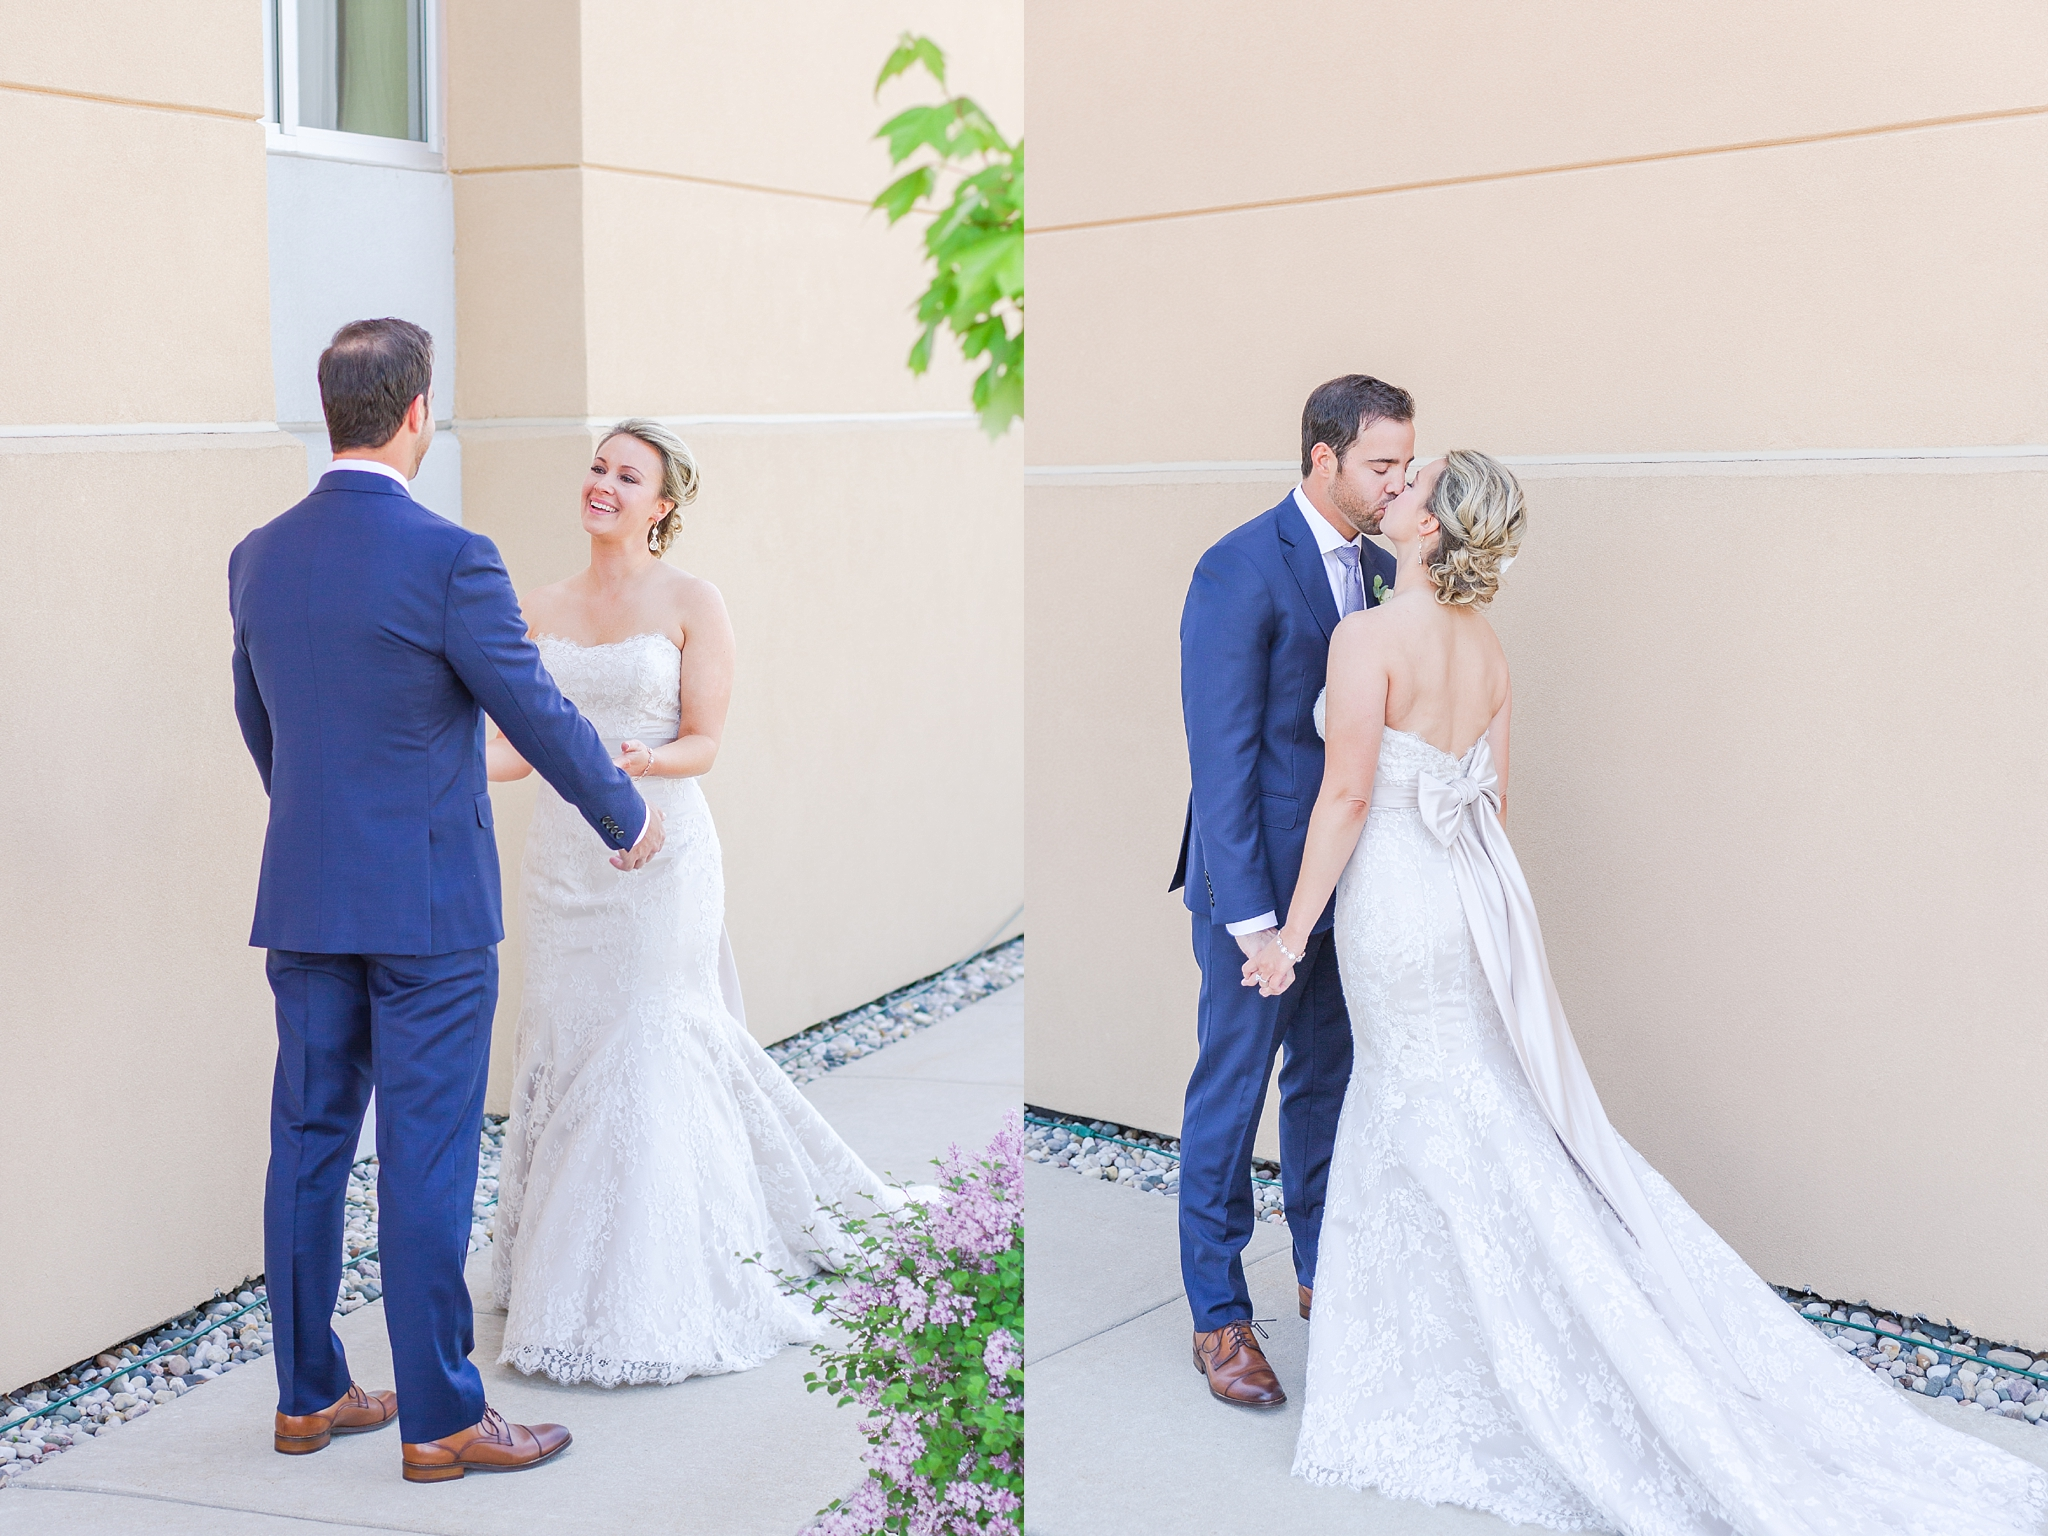 fun-candid-laid-back-wedding-photos-at-wellers-carriage-house-in-saline-michigan-and-at-the-eagle-crest-golf-resort-by-courtney-carolyn-photography_0020.jpg